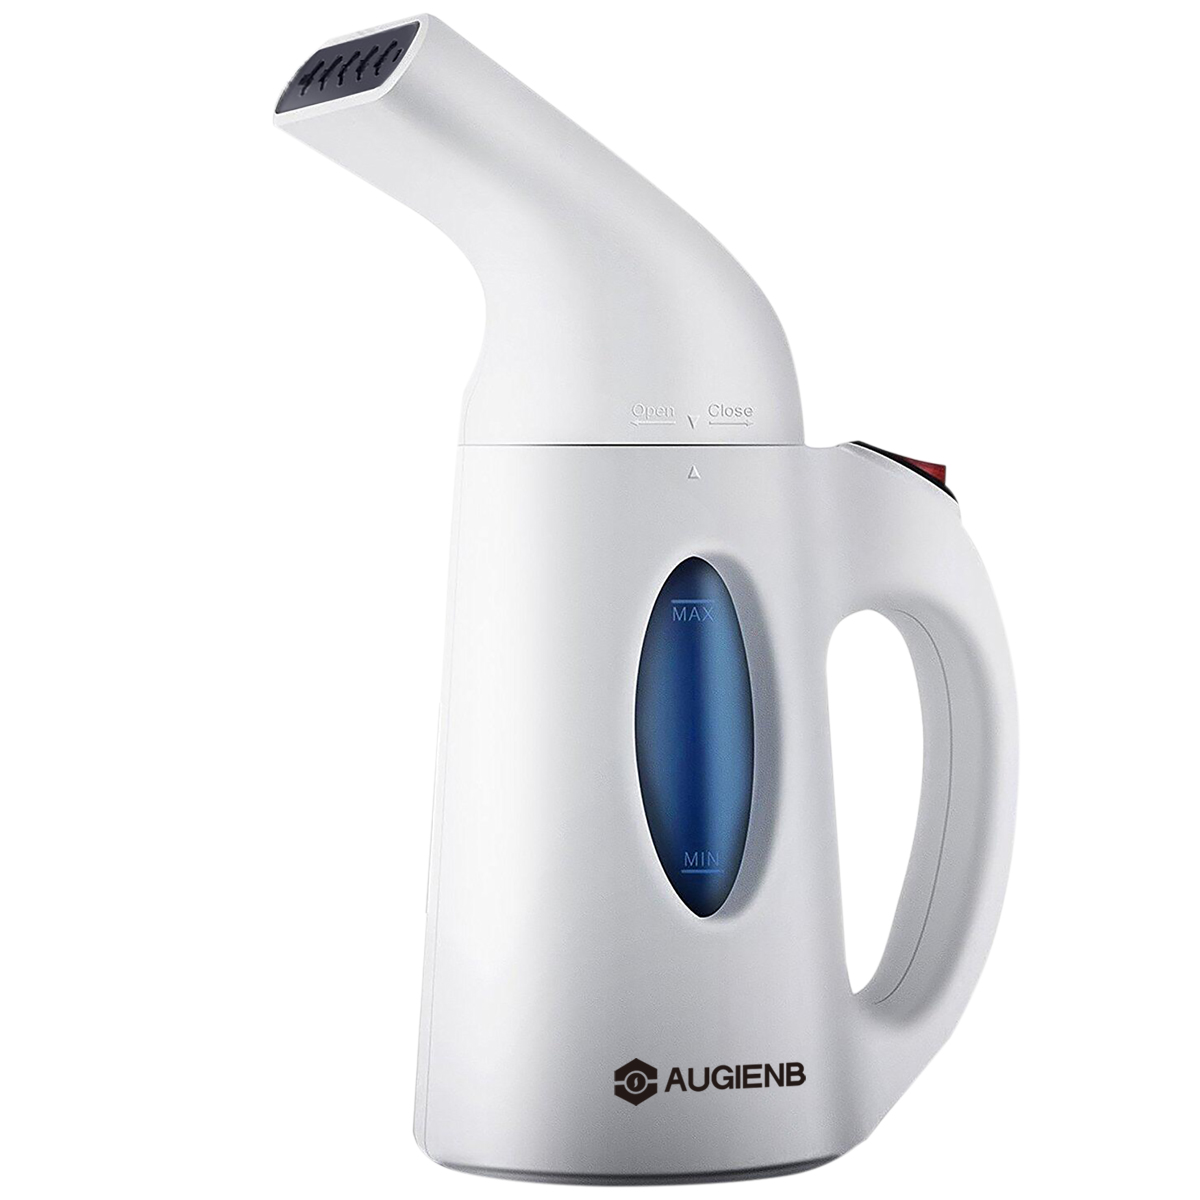 AUGIENB 700W 150ML Portable Handheld Fast Heat Up Fabric Clothes Garment Steamer,Iron Steam Ironing Machine... by